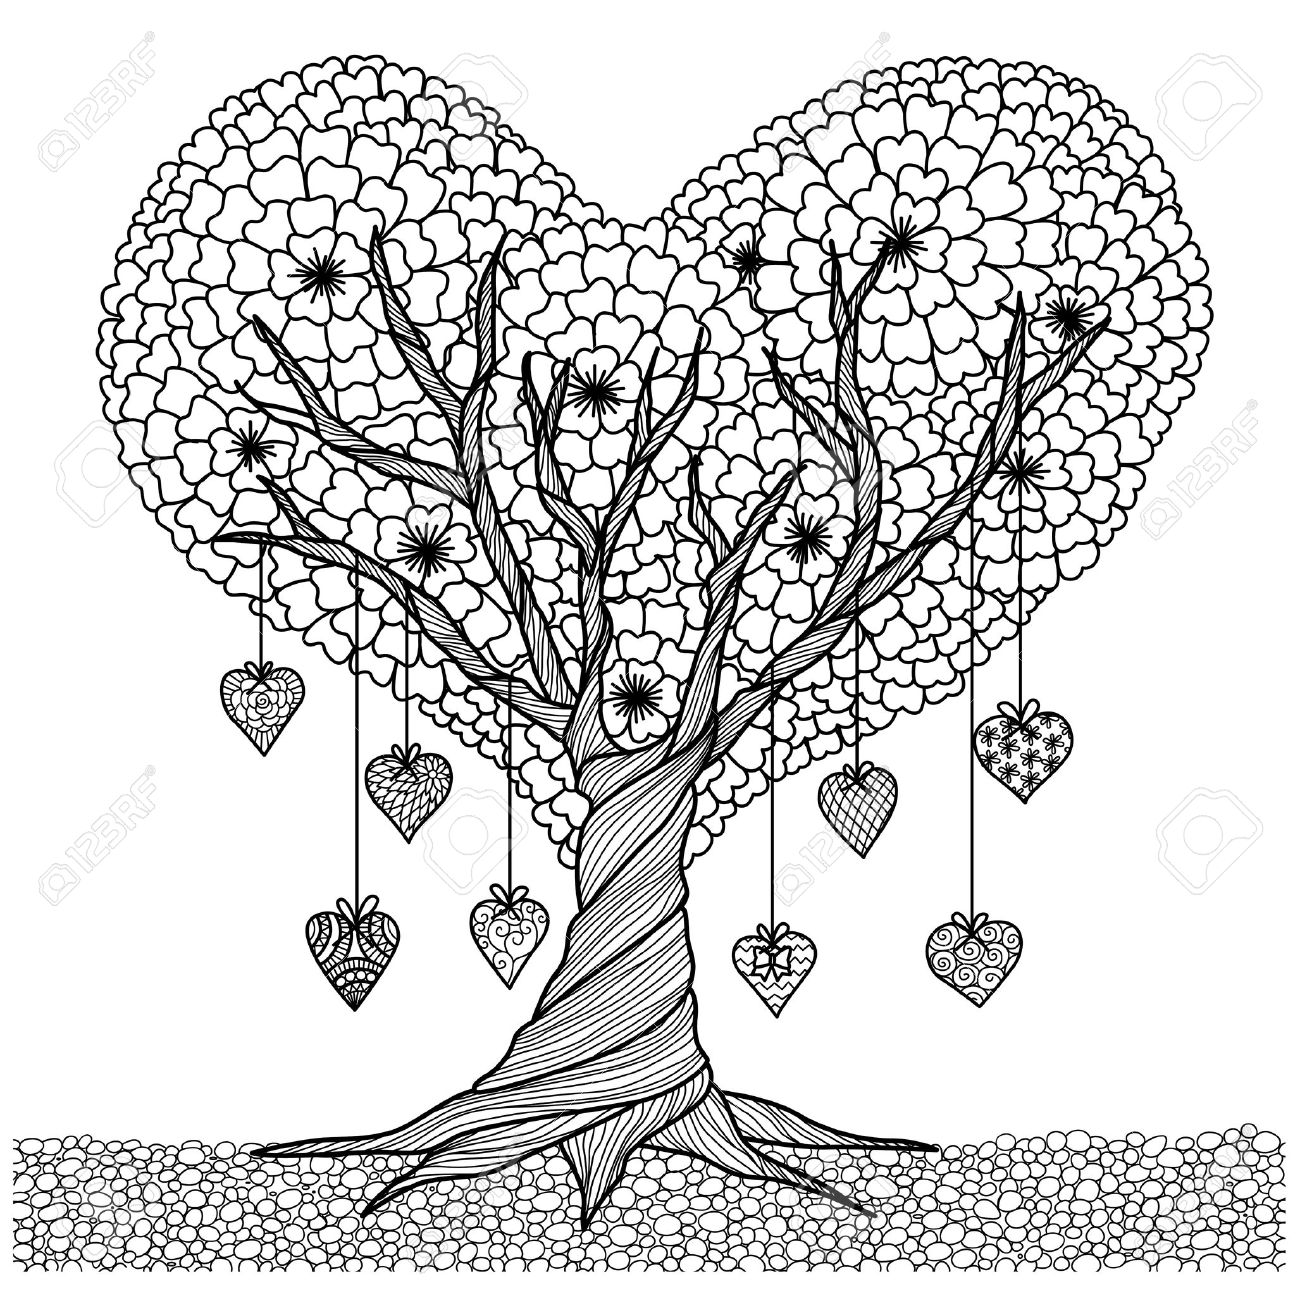 Hand Drawn Heart Shape Tree For Coloring Book For Adult Royalty Free ...